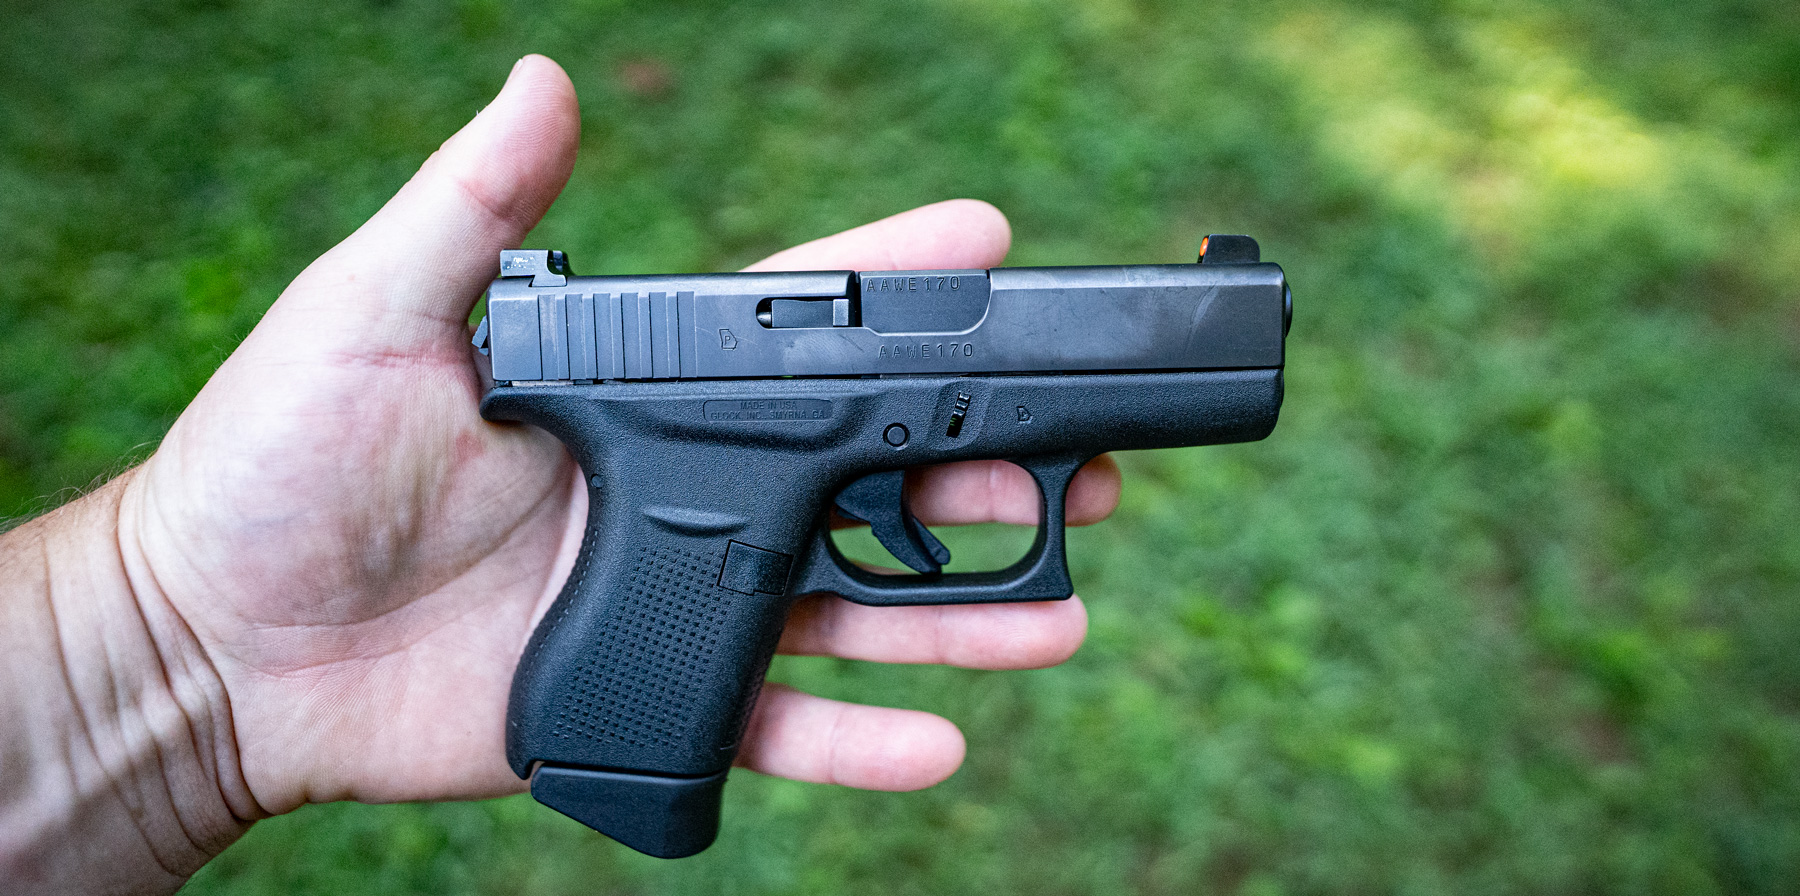 The Glock 42 held by a shooter in this photo is a popular concealed carry gun.